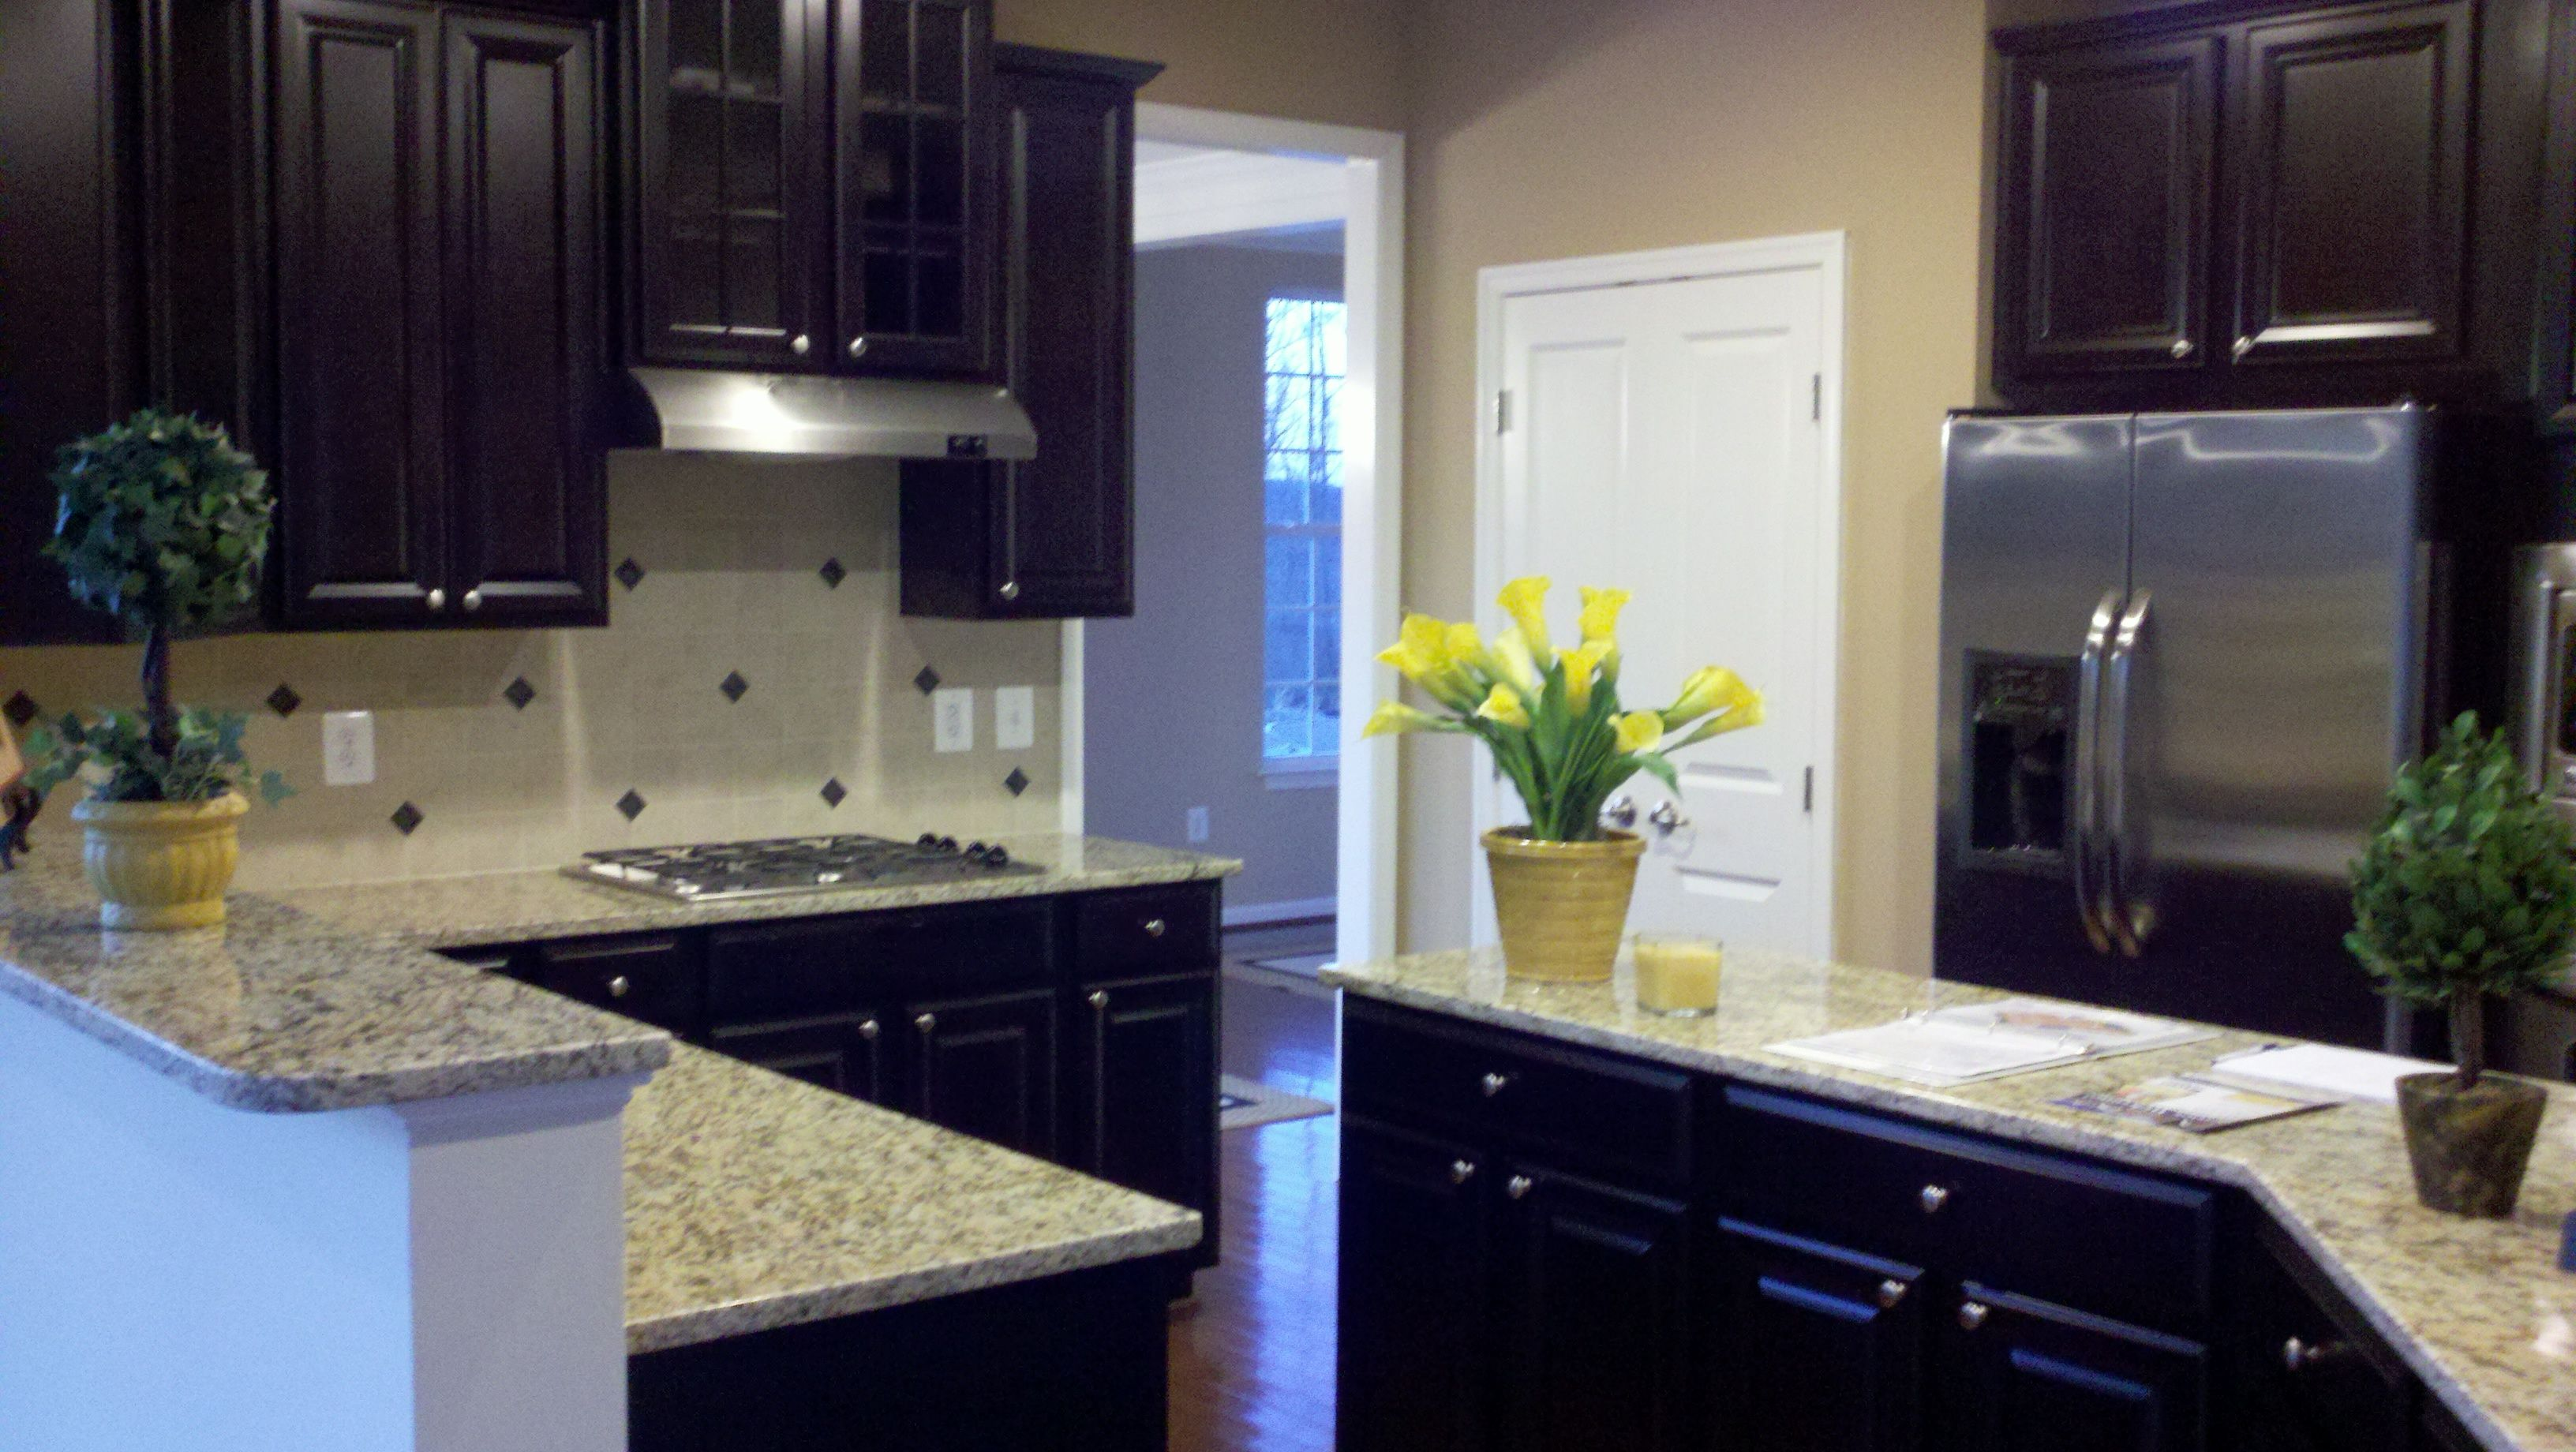 Kitchen Designers In Maryland Captivating Ryan Homes Model In Maryland With Espresso Cabinets  Kitchens Decorating Design